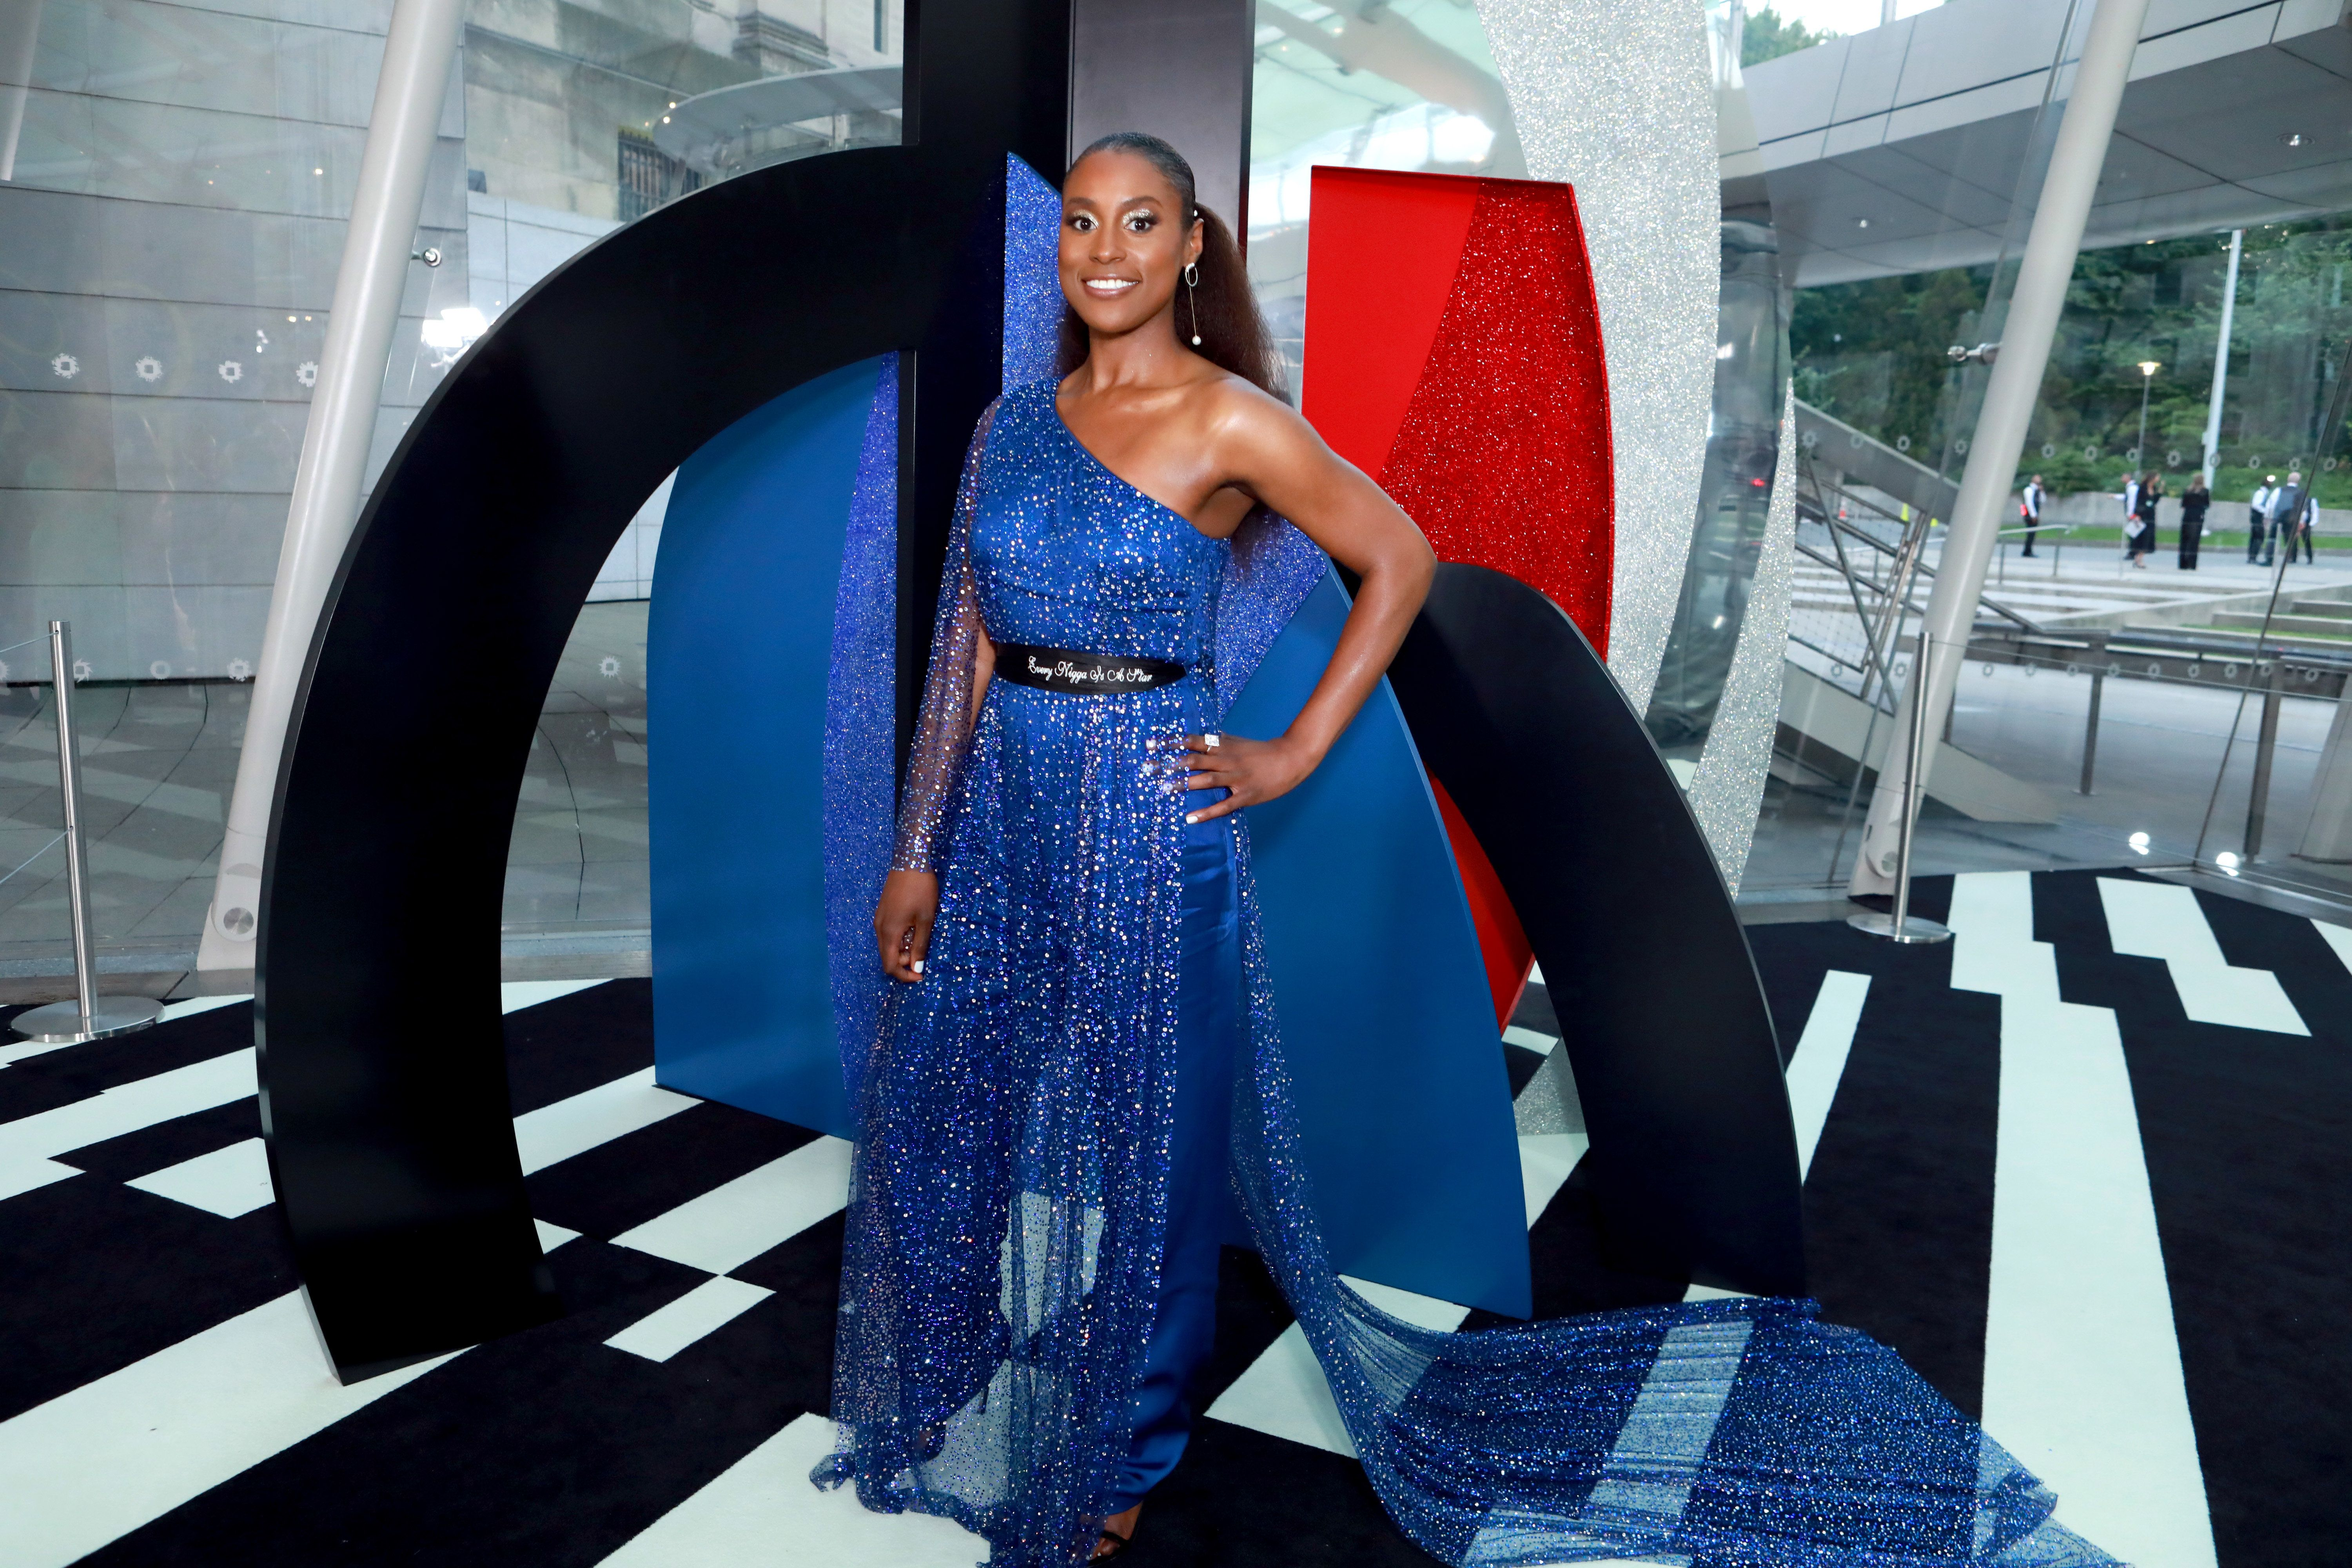 NEW YORK, NY - JUNE 04:  Issa Rae attends the 2018 CFDA Fashion Awards at Brooklyn Museum on June 4, 2018 in New York City.  (Photo by Gonzalo Marroquin/Patrick McMullan via Getty Images)